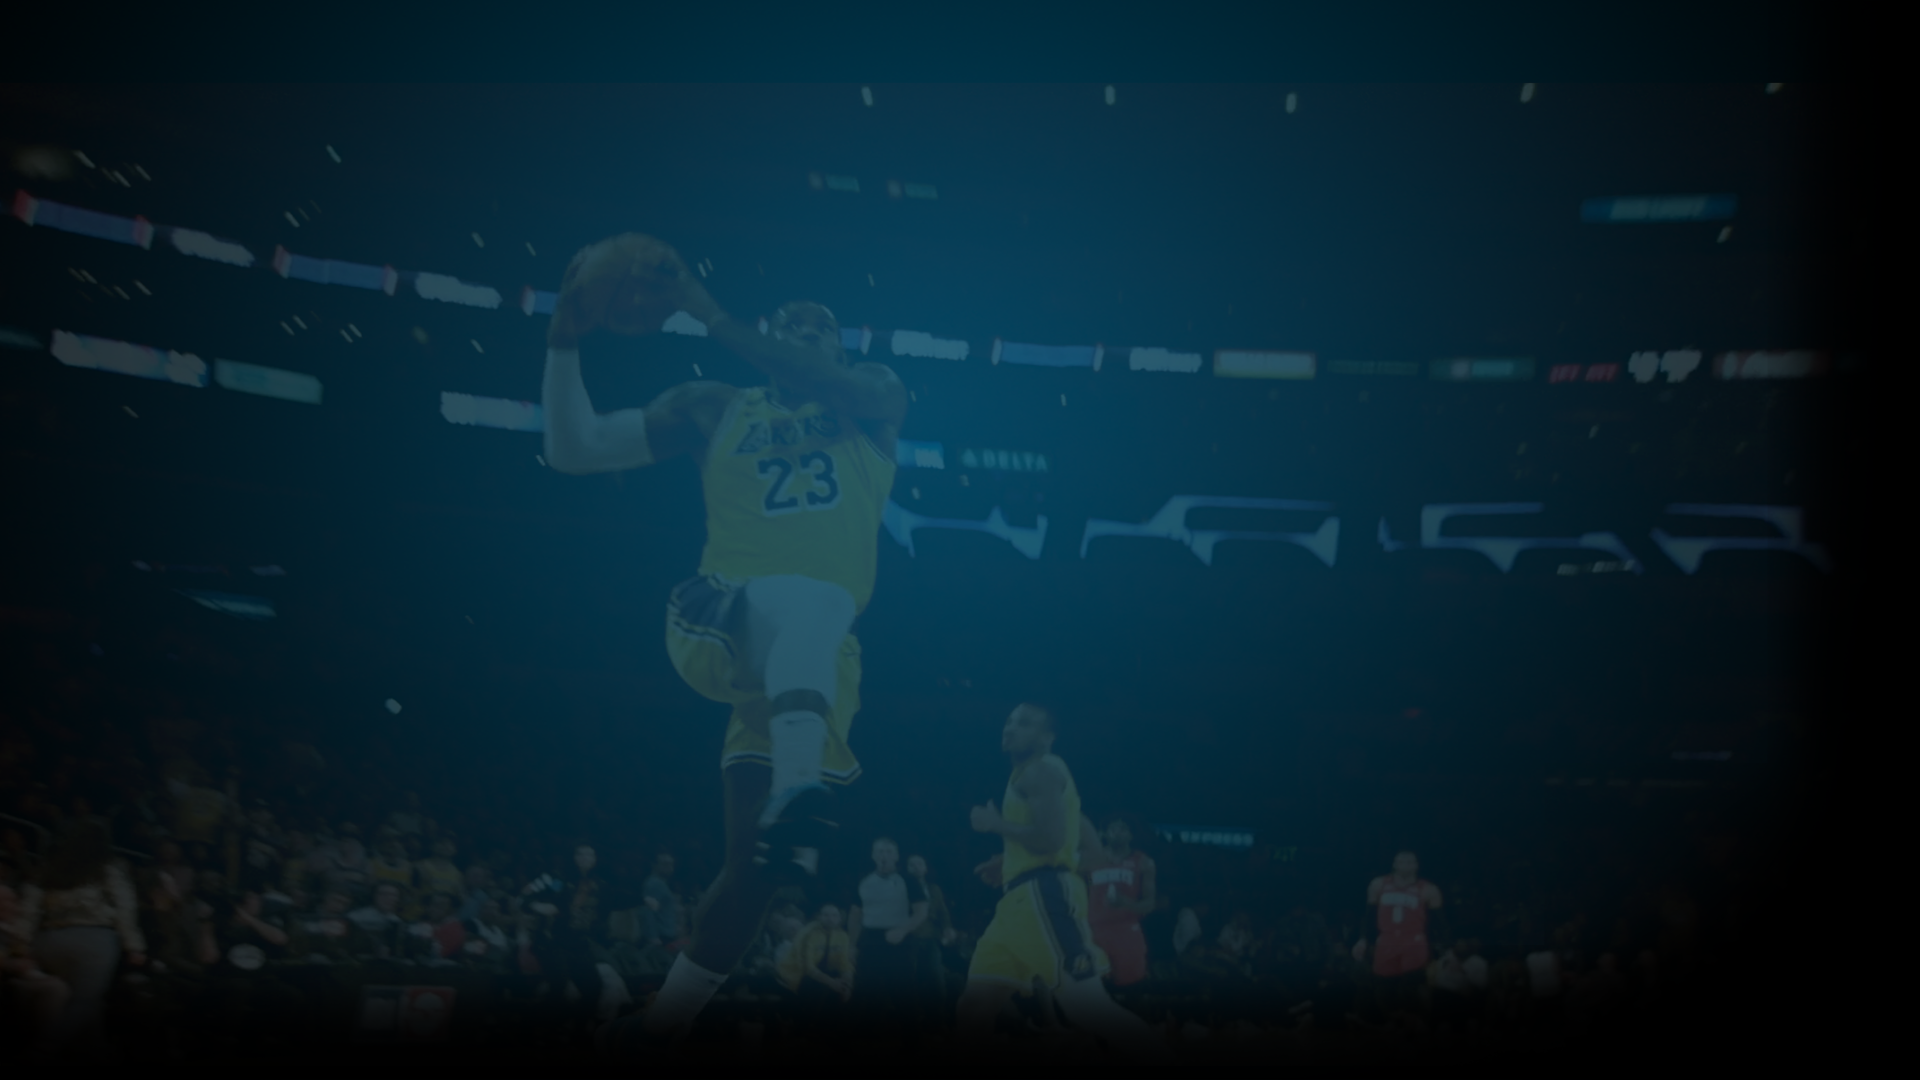 Still of Lebron James jumping to dunk a basketball featured in the NBA's 2020 Restart promo. Flavorlab Score's Glenn Schloss composed the original music for the spot and Flavorlab Sound's Brian Quill provided editing, sound design, and mix to the spot.